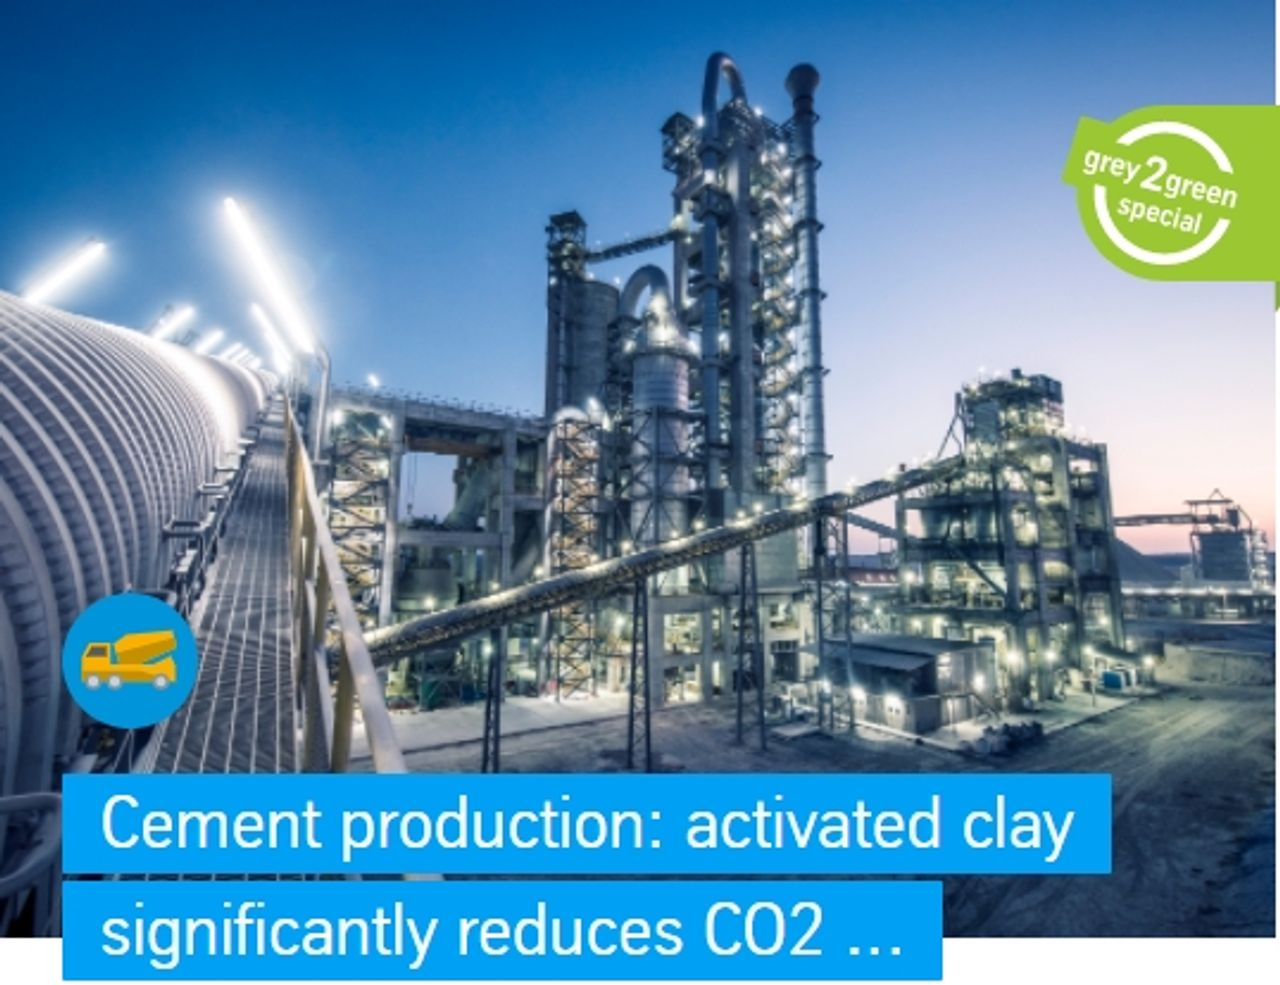 The polysius® activated clay technology developed by thyssenkrupp is reducing the process-related carbon dioxide emissions generated in the production of conventional cement by up to 40 percent. The Netherlands-based company Cimpor Global Holdings (CGH) is using this technology on an industrial scale in its new plant in Cameroon and is replacing 30 percent cement clinker with activated clay. At the same time, it is reducing its production costs and thus improving its competitiveness twice over. For CGH, this is already the second project in which calcined clays are used.